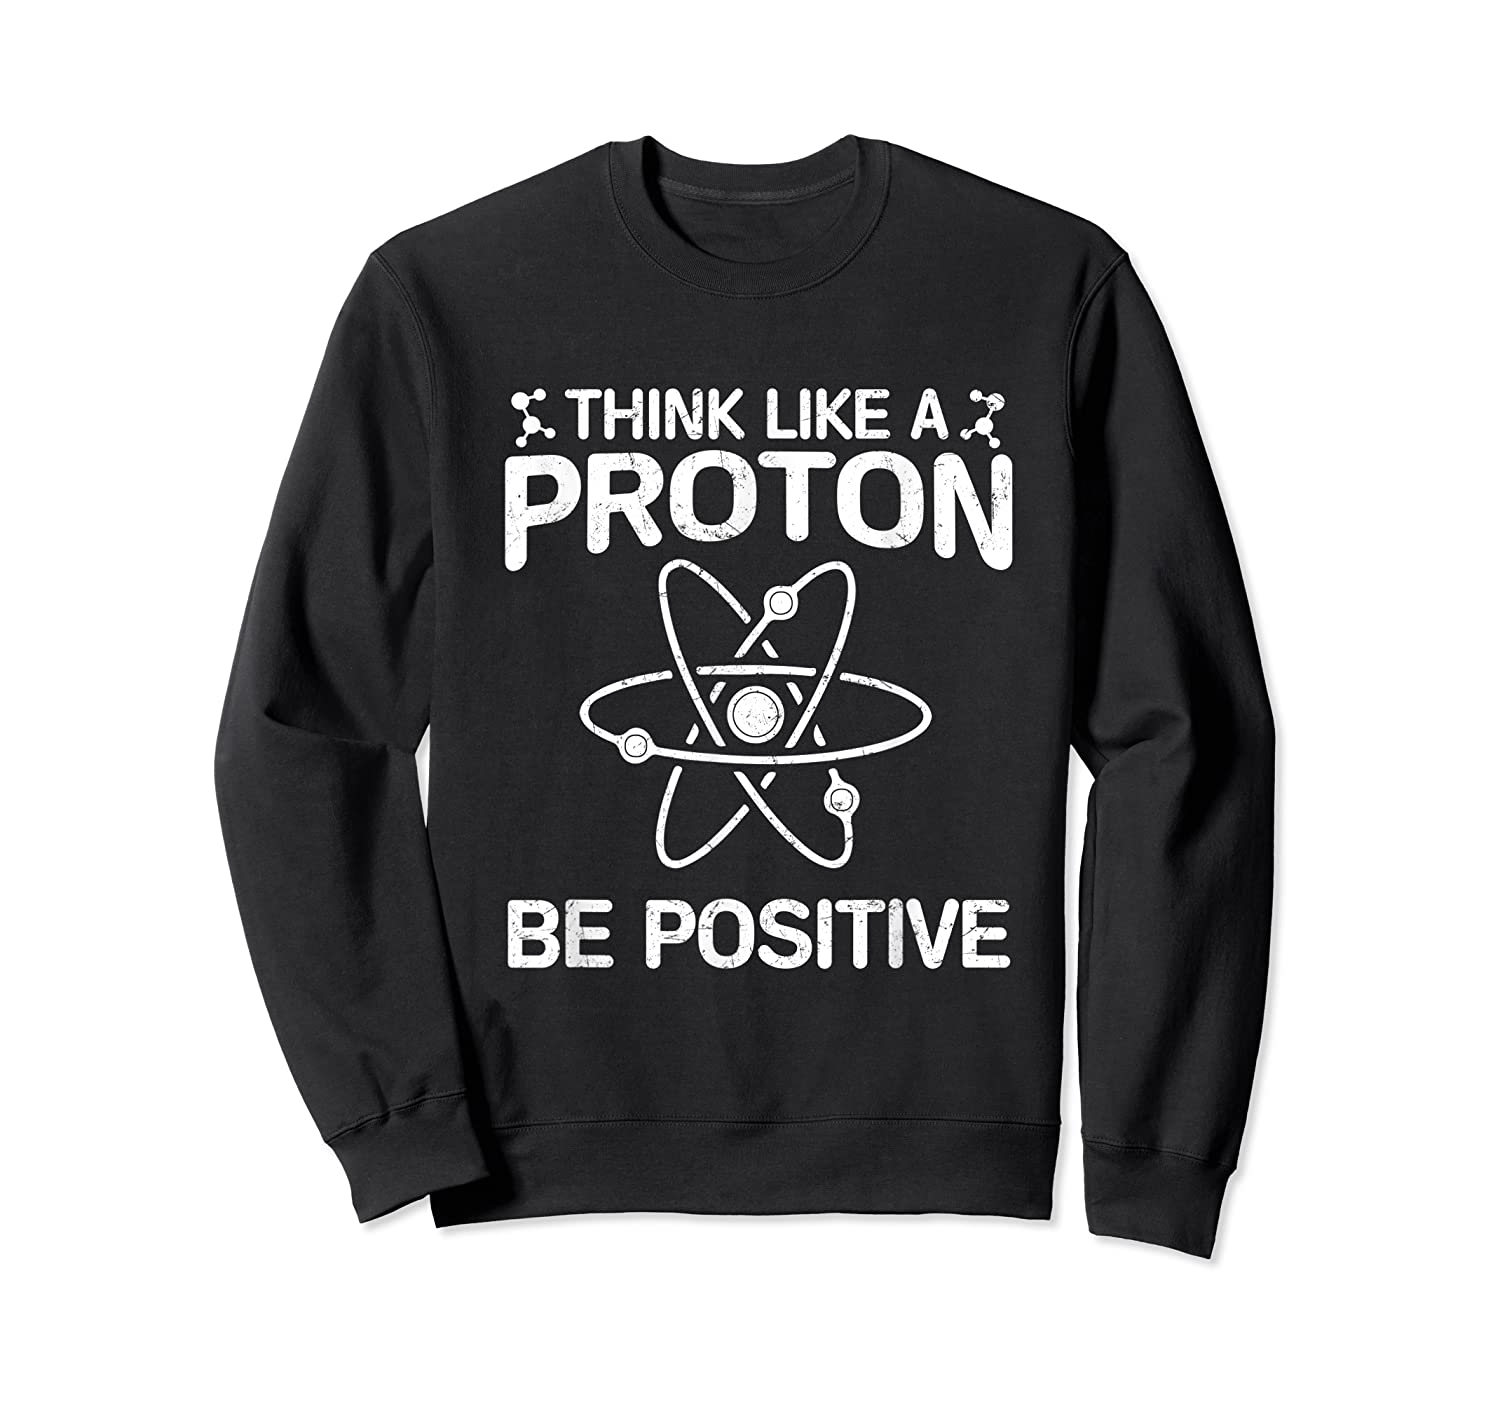 Think Like A Proton Be Positive Shirts Science Humor T-shirt Crewneck Sweater